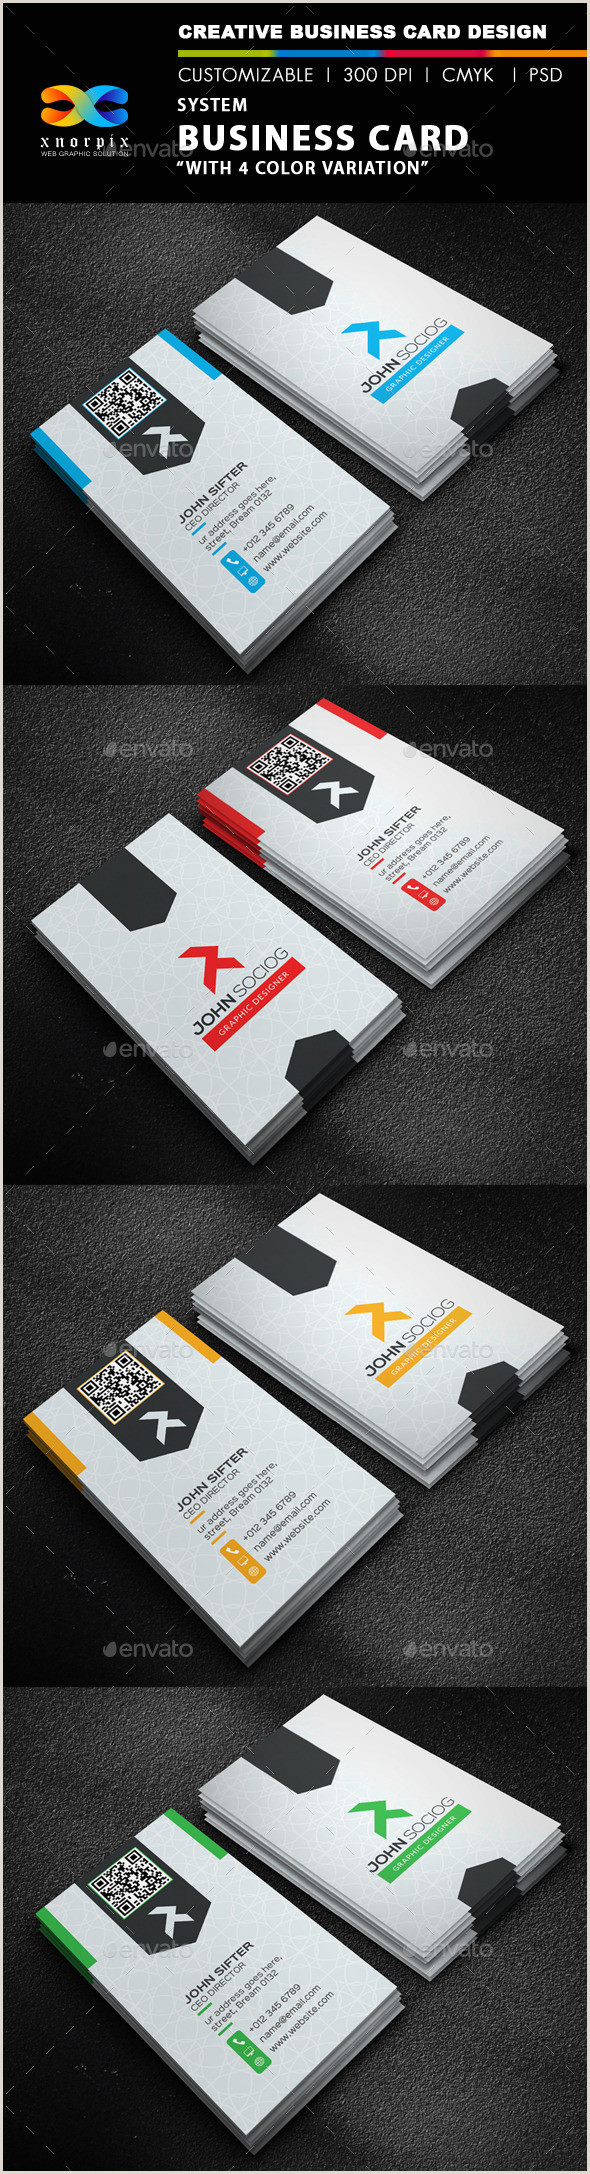 Personal Business Card Ideas Personal Business Card Templates & Designs From Graphicriver